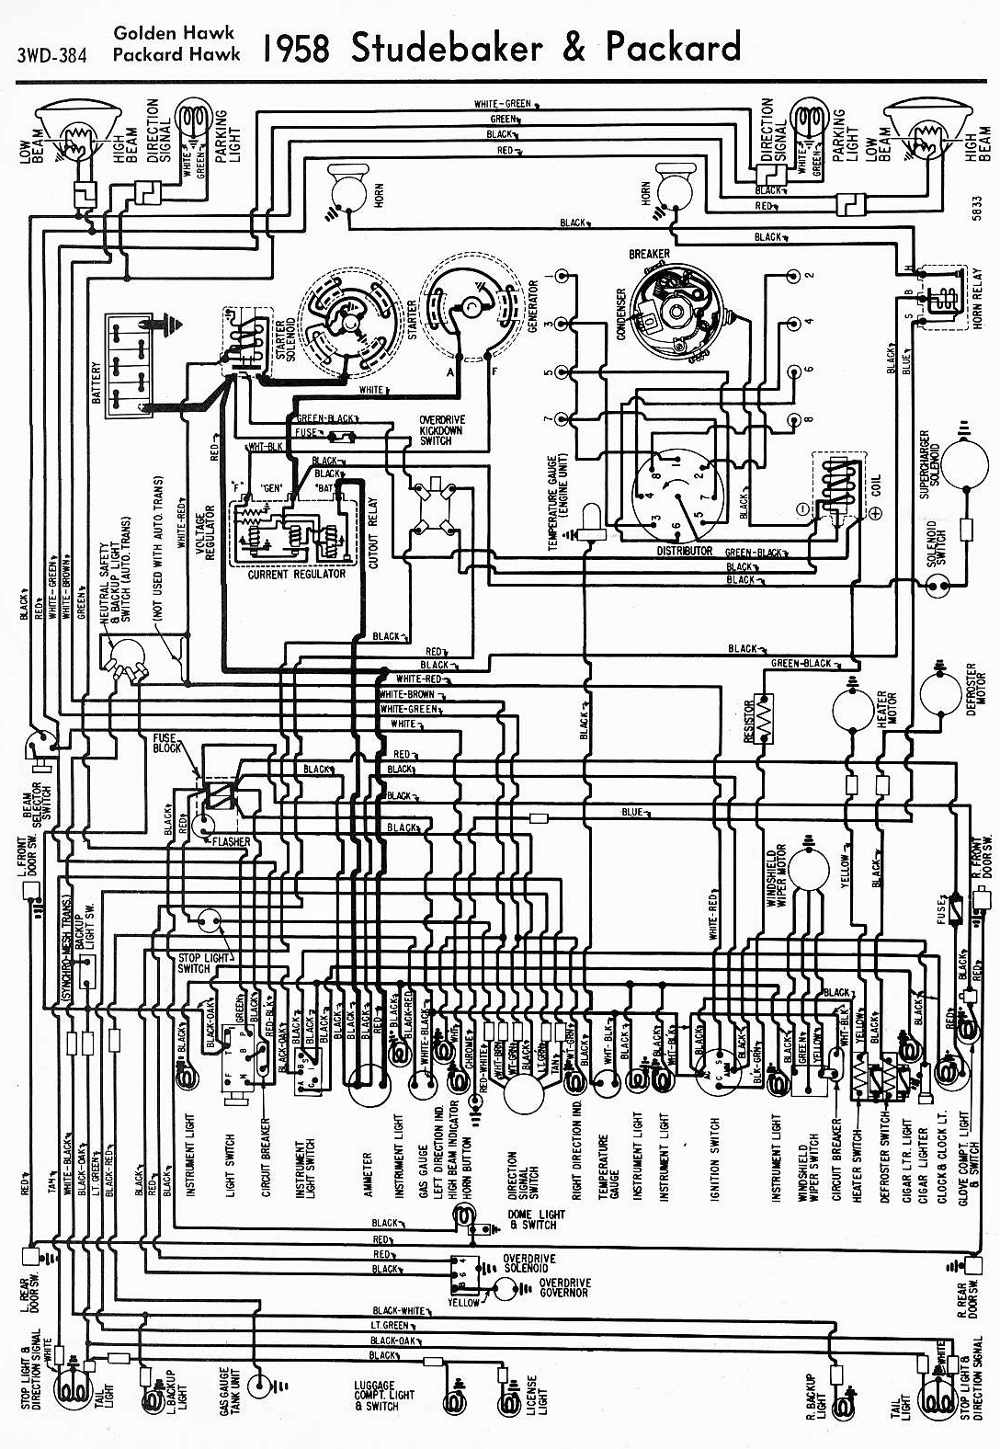 Velie Wiring Diagram - Great Installation Of Wiring Diagram • on switch diagrams, electronic circuit diagrams, series and parallel circuits diagrams, lighting diagrams, motor diagrams, battery diagrams, internet of things diagrams, sincgars radio configurations diagrams, electrical diagrams, troubleshooting diagrams, led circuit diagrams, pinout diagrams, engine diagrams, transformer diagrams, snatch block diagrams, gmc fuse box diagrams, smart car diagrams, friendship bracelet diagrams, honda motorcycle repair diagrams, hvac diagrams,